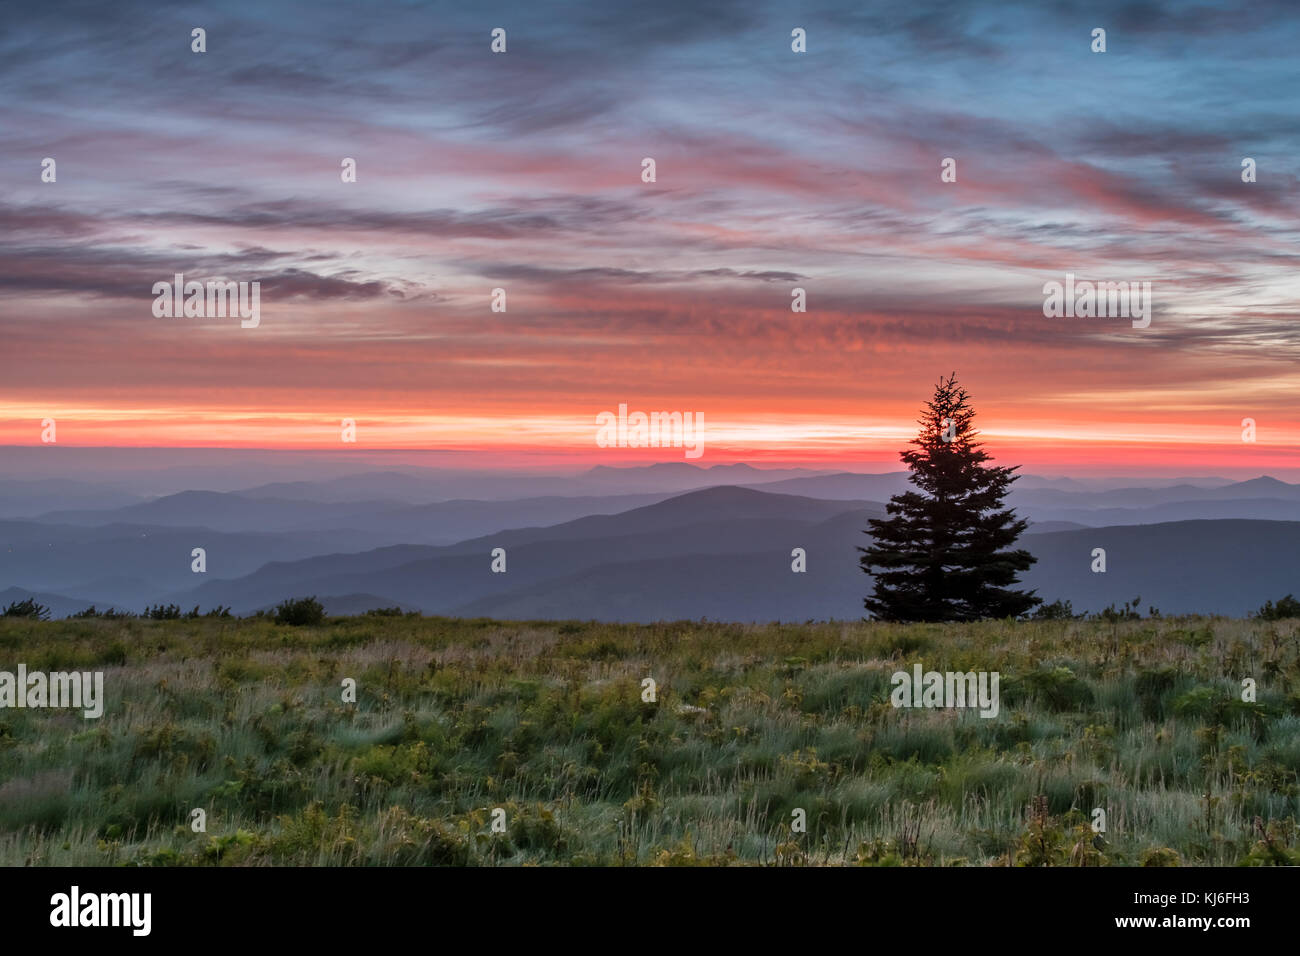 Single Pine Tree Stands Above Mountains at Sun Rise in North Carolina mountains - Stock Image